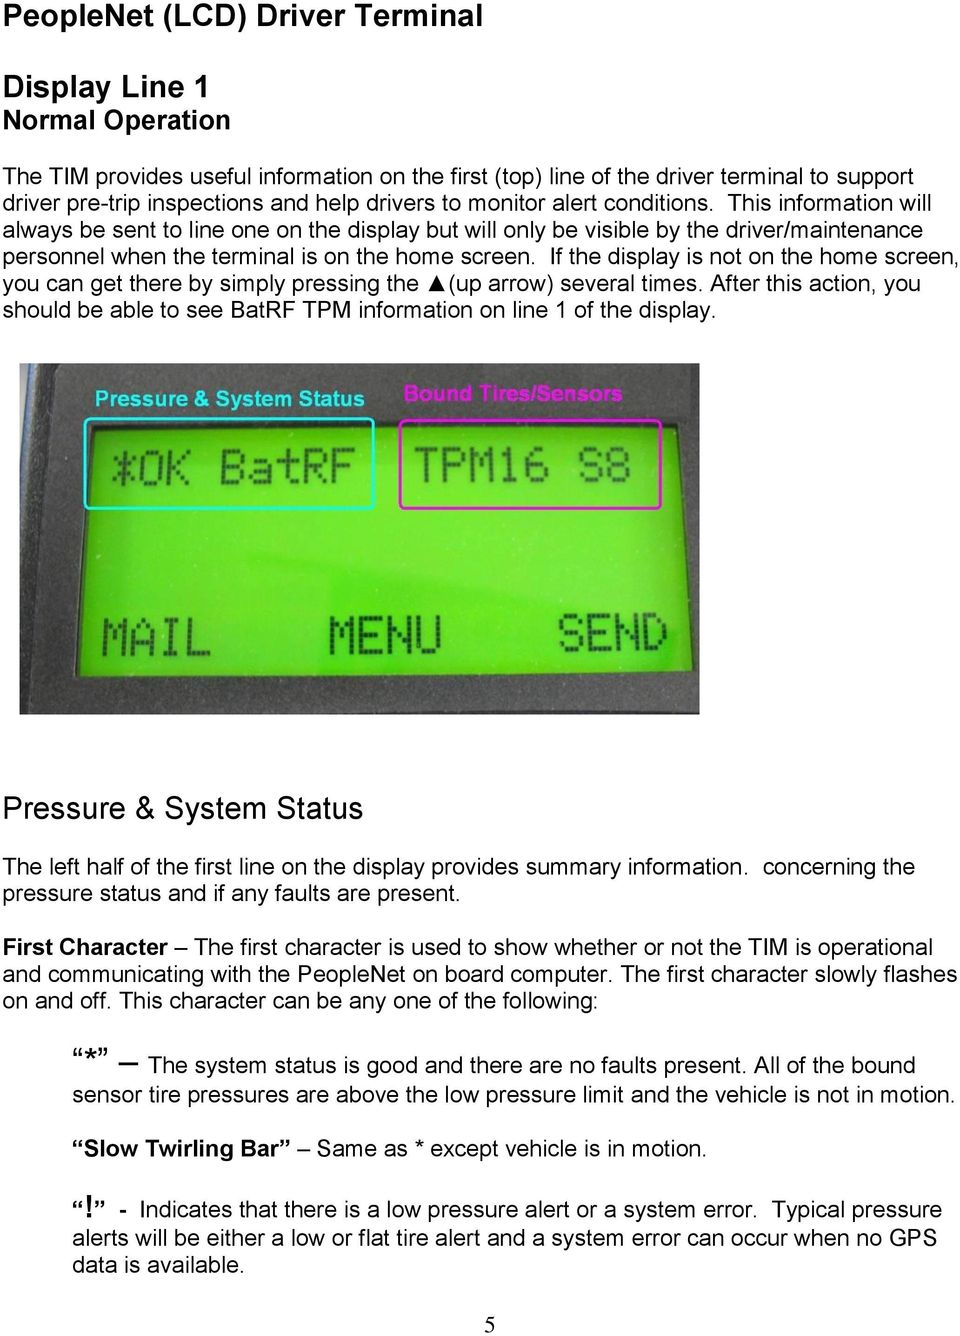 user reference guide tractor interface module peoplenet interface